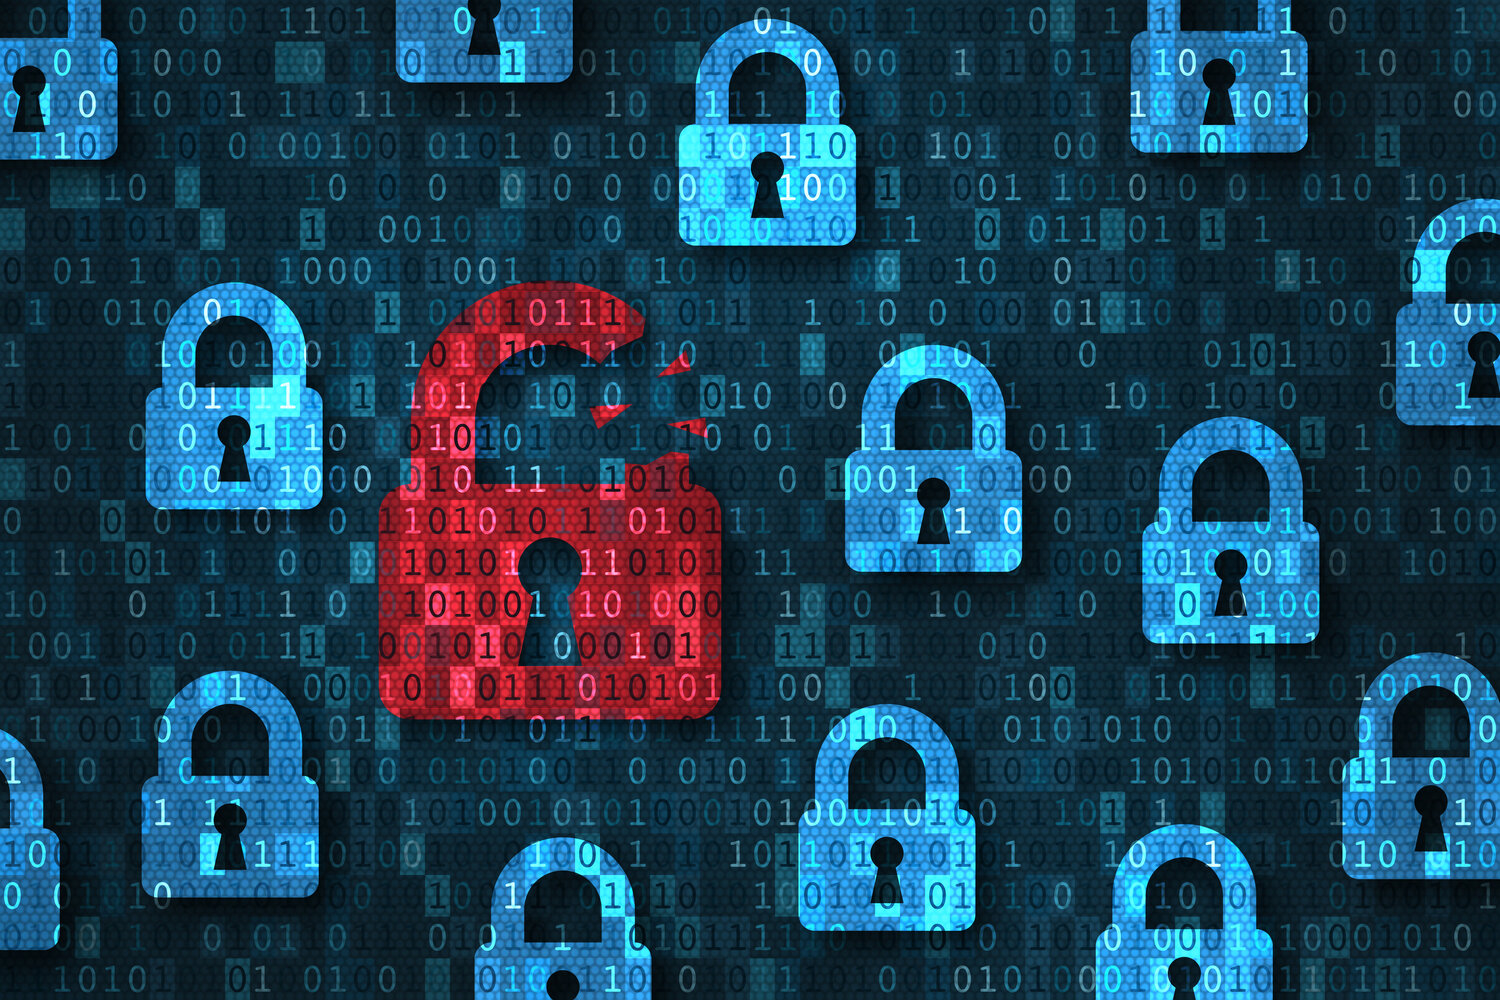 <p>If you Utilize these banks, your personal data May Have been stolen in a security breach thumbnail